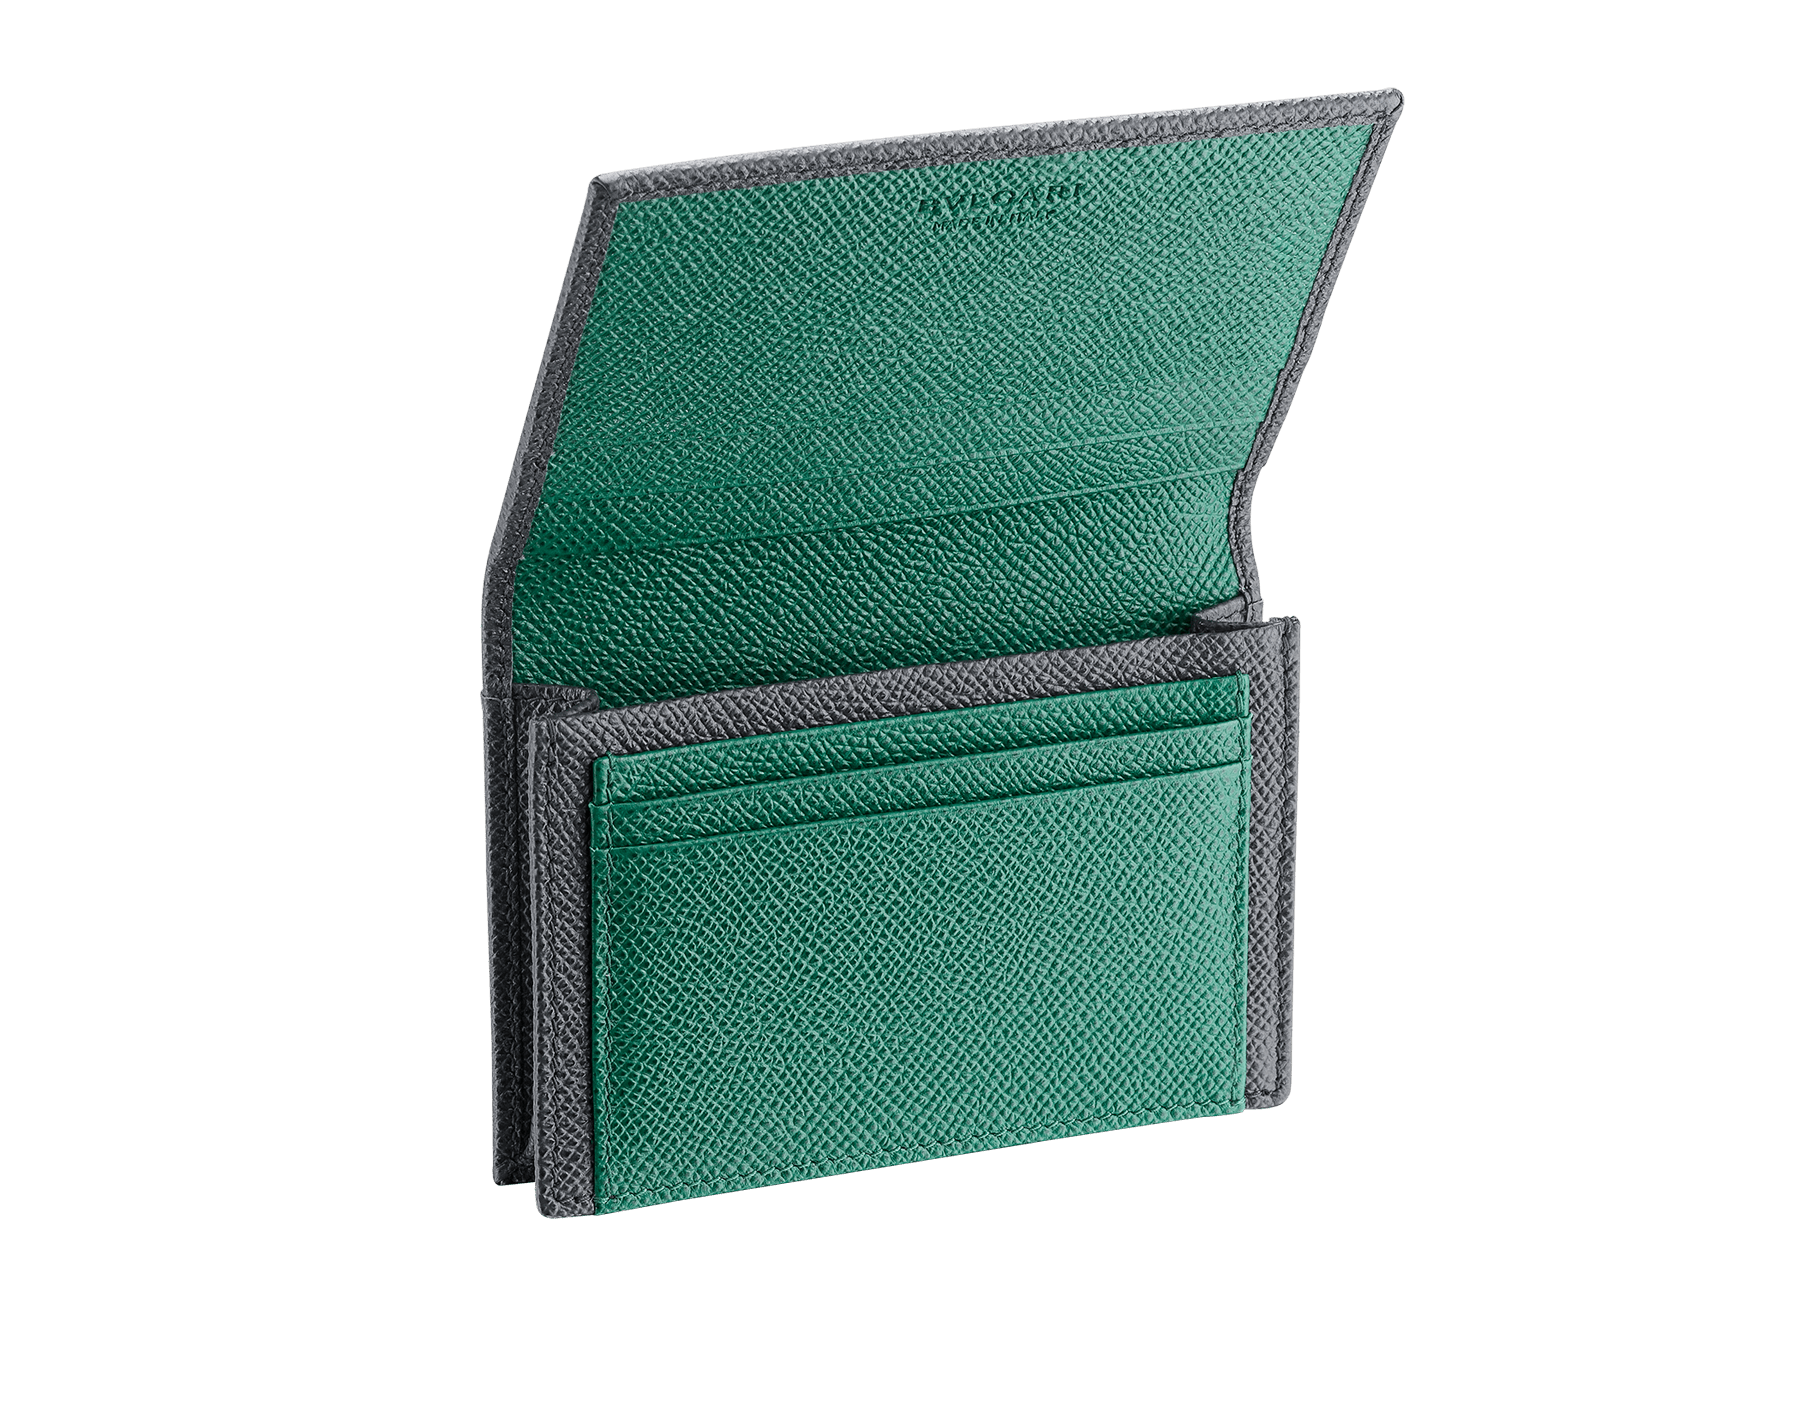 BVLGARI BVLGARI business card holder in charcoal diamond and emerald green grain calf leather, with brass palladium plated logo décor. 289115 image 2